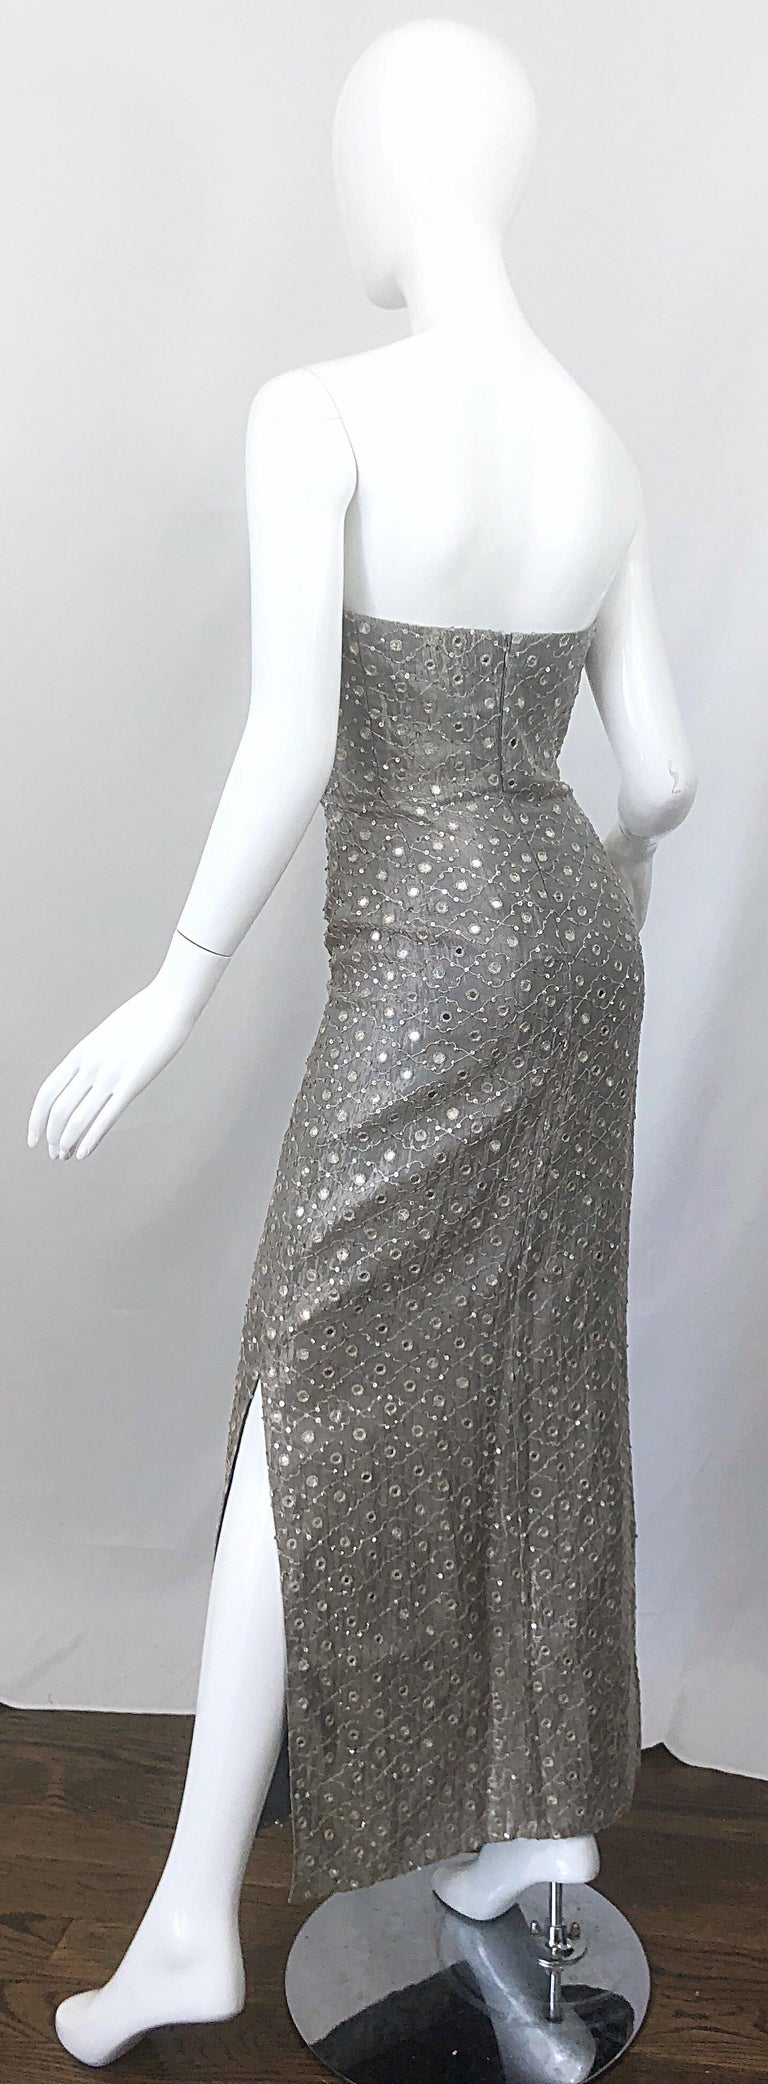 1990s Silver Grey Mirrored Sequins Size 6 Strapless Silk Vintage Gown Dress For Sale 8